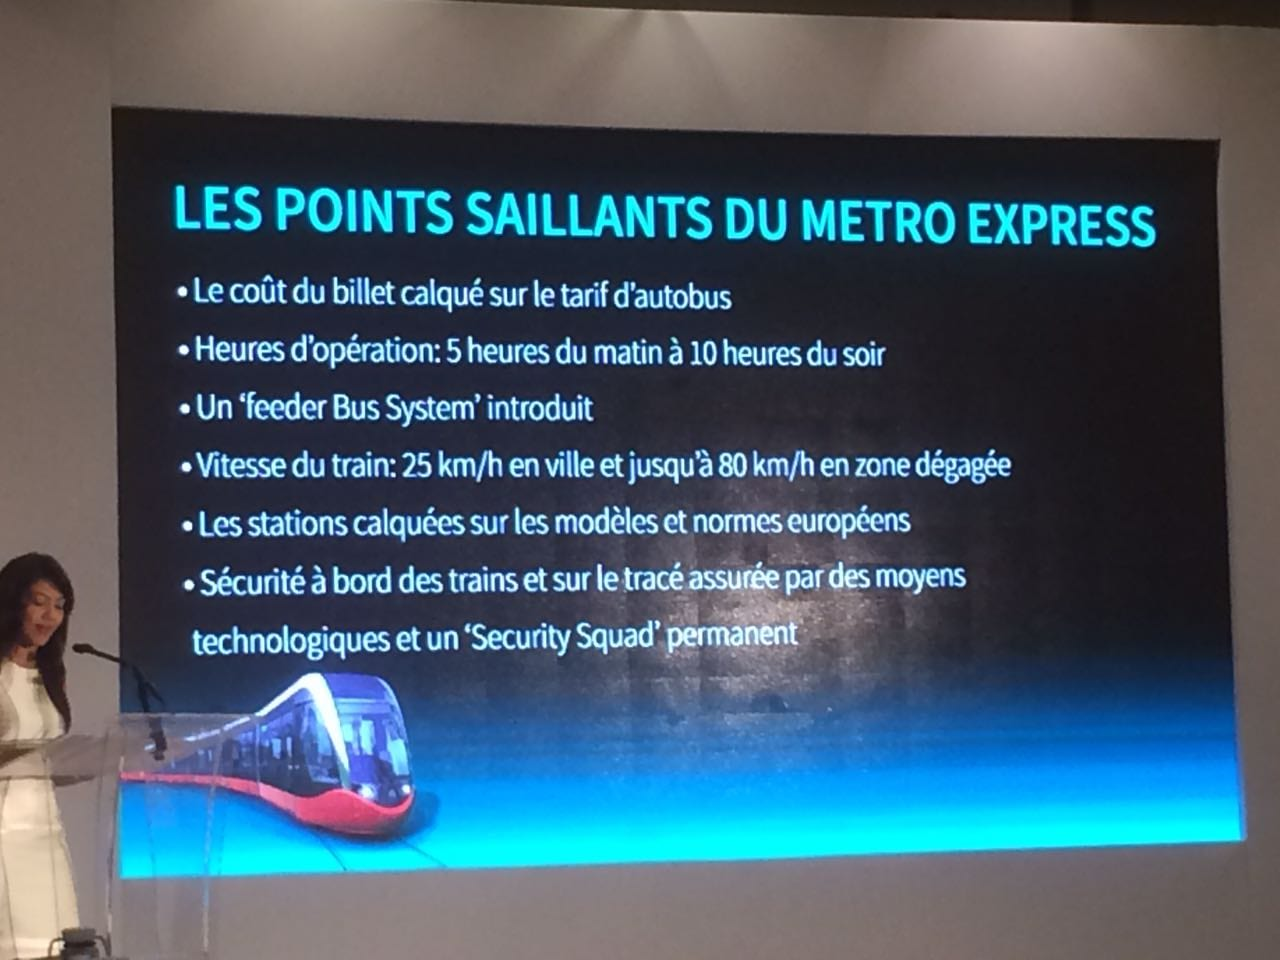 Metro Express - les points saillants 3